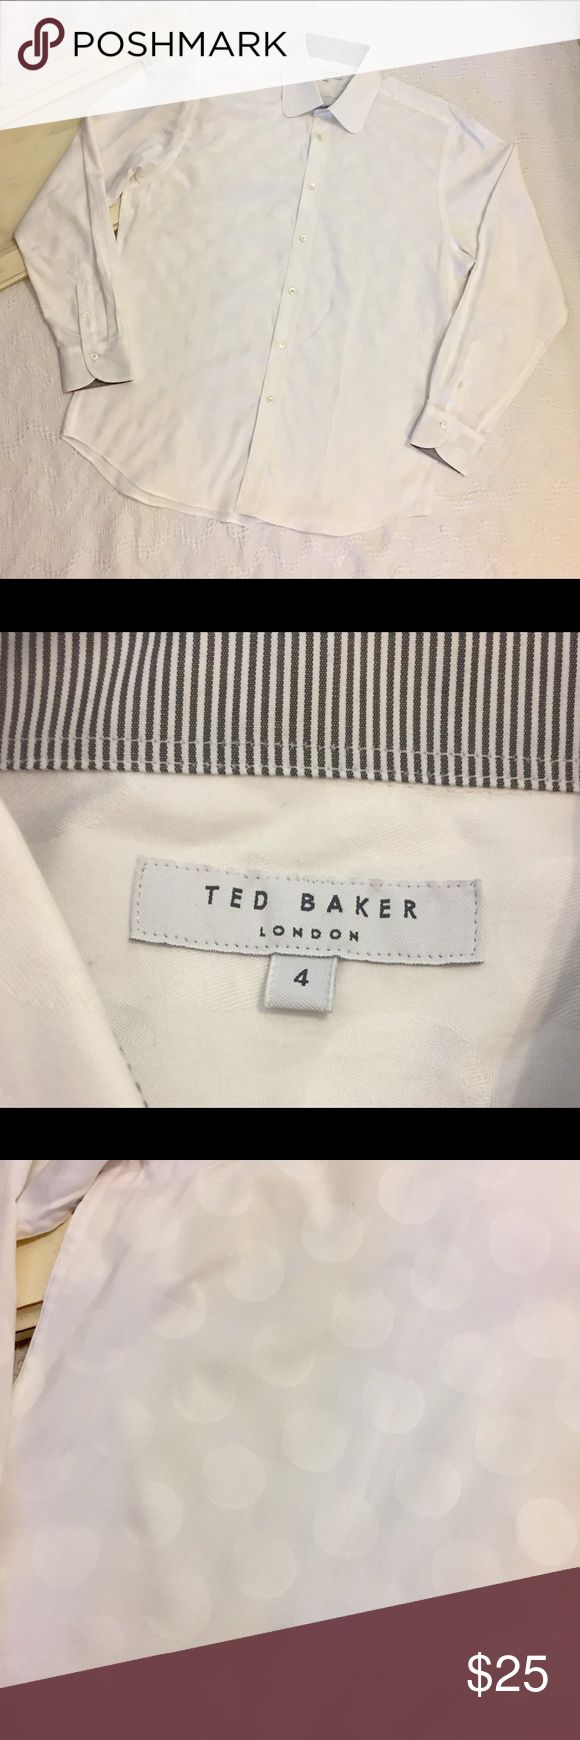 """Men's Ted Baker London Long Sleeve B/D Sz 4 Lg Men's Ted Baker London Long Sleeve Button Down size 4 which is a US Large.  Nice White Long Sleeve with inlaid Polka Dots/Circles, such cool.  Gently used condition, no flaws or defects. Please see pictures for details.   Armpit to Armpit - 24  Length - 31""""   Thank you for shopping with us, we appreciate your business.  *All items are measured laying flat, please be sure to check sizing before purchasing.  All brands do fit differently and all…"""